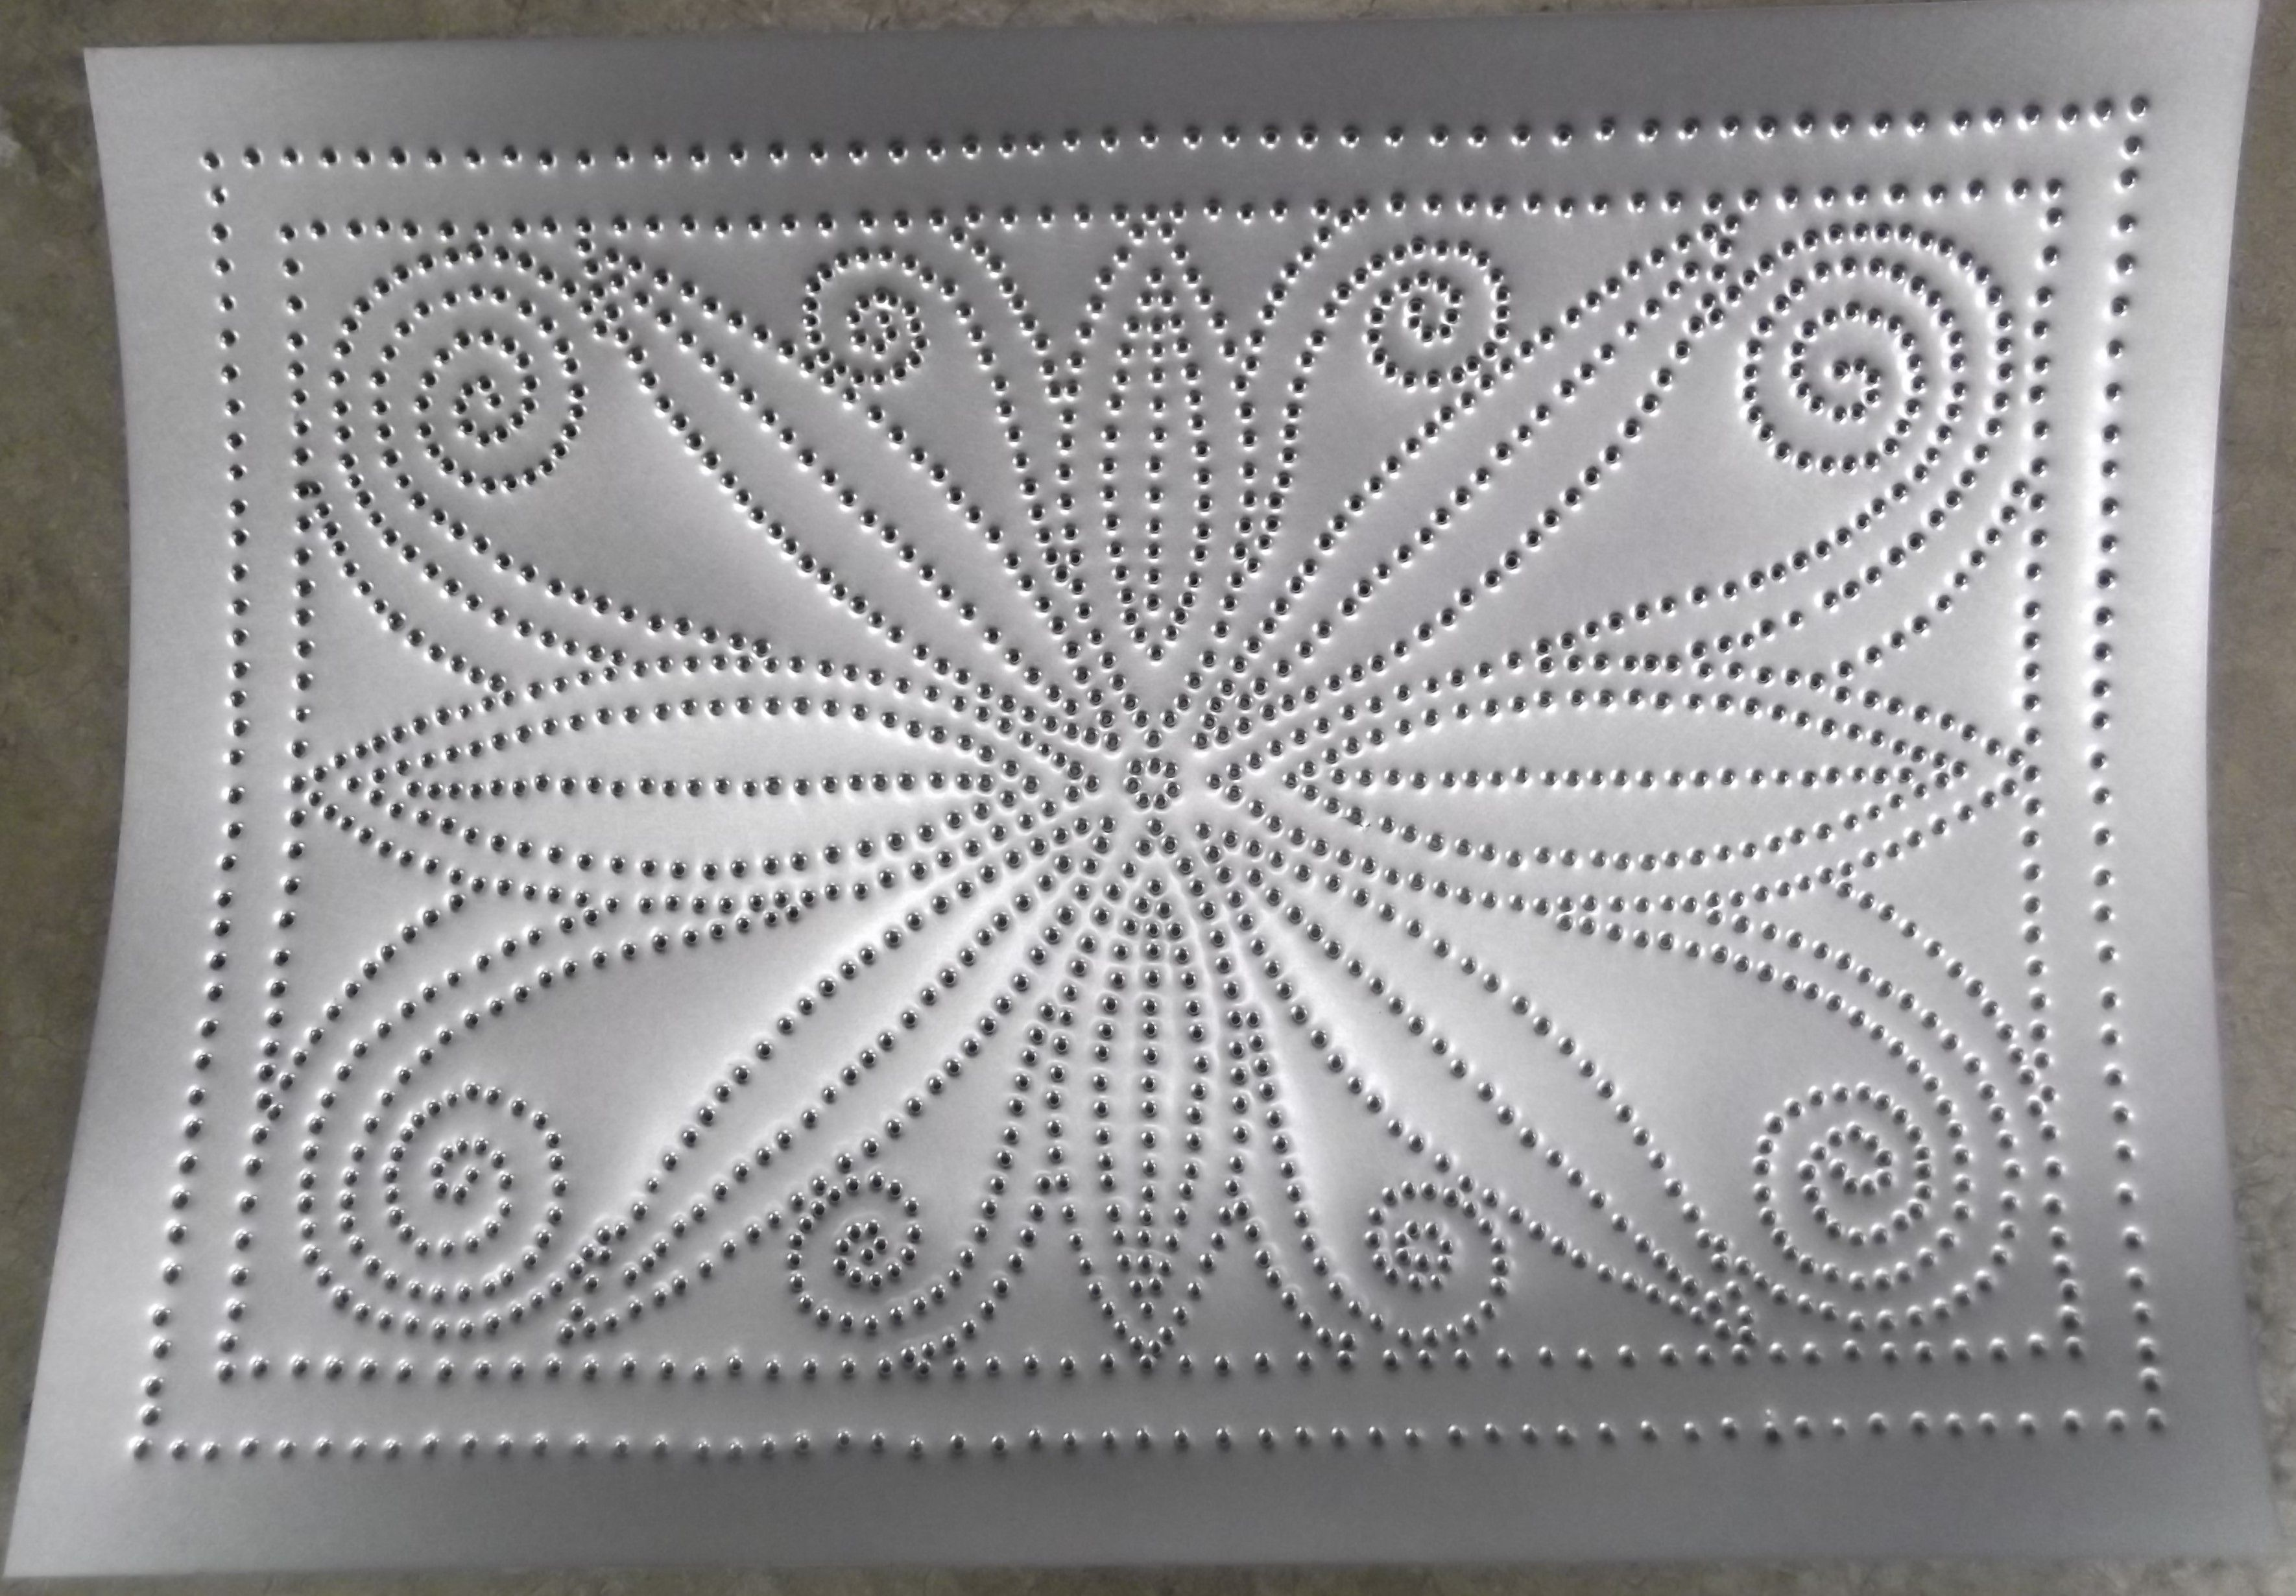 Punched Tin In Stock Ready To Install Rps 1073 Lacework No 10 10x14 Punched Tin Patterns Punched Tin Crafts